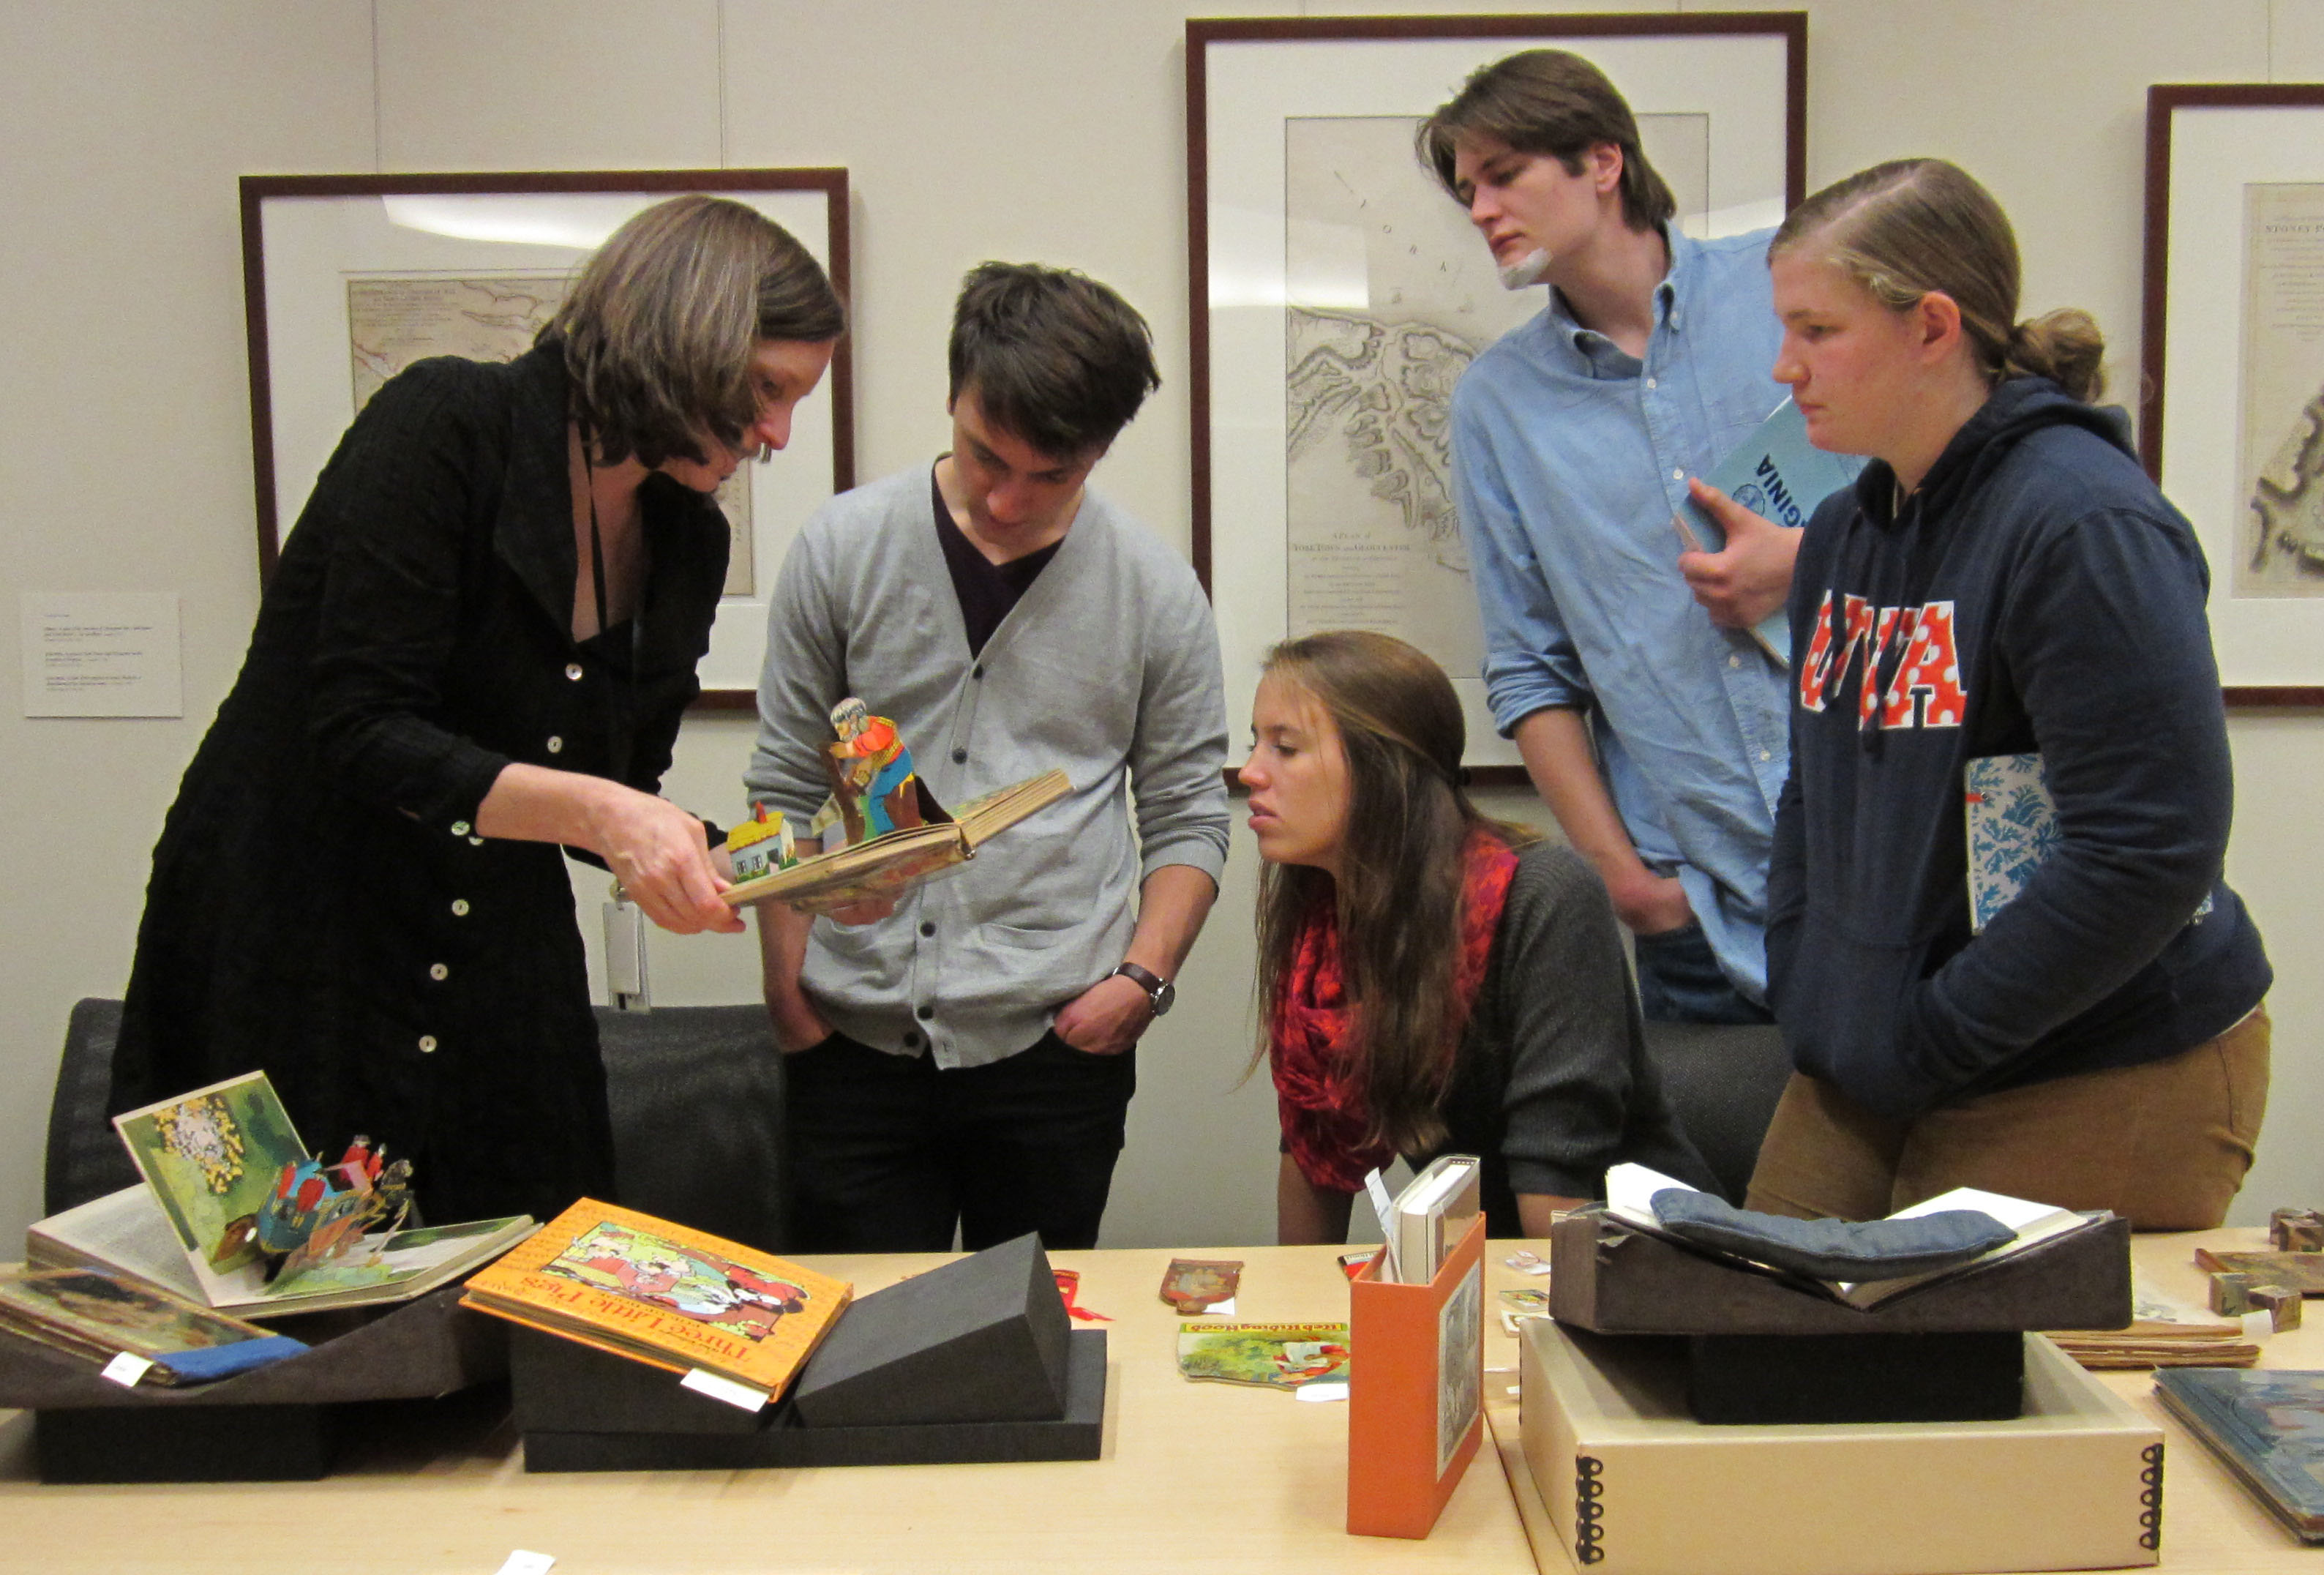 Molly and the students take a closer look at pop-up books. (Photograph by Petrina Jackson)